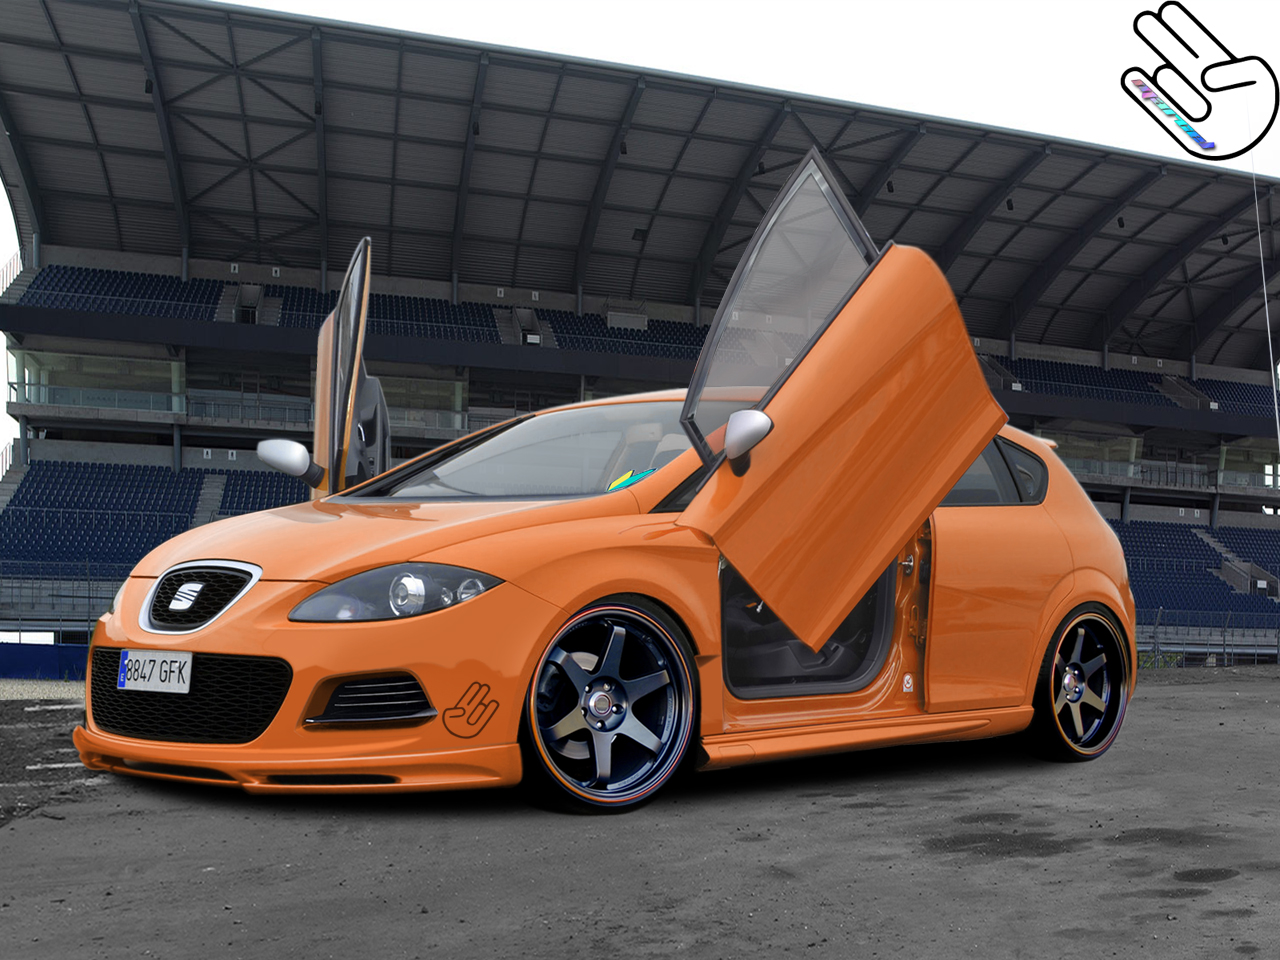 seat leon tuned by degraafm on deviantart. Black Bedroom Furniture Sets. Home Design Ideas